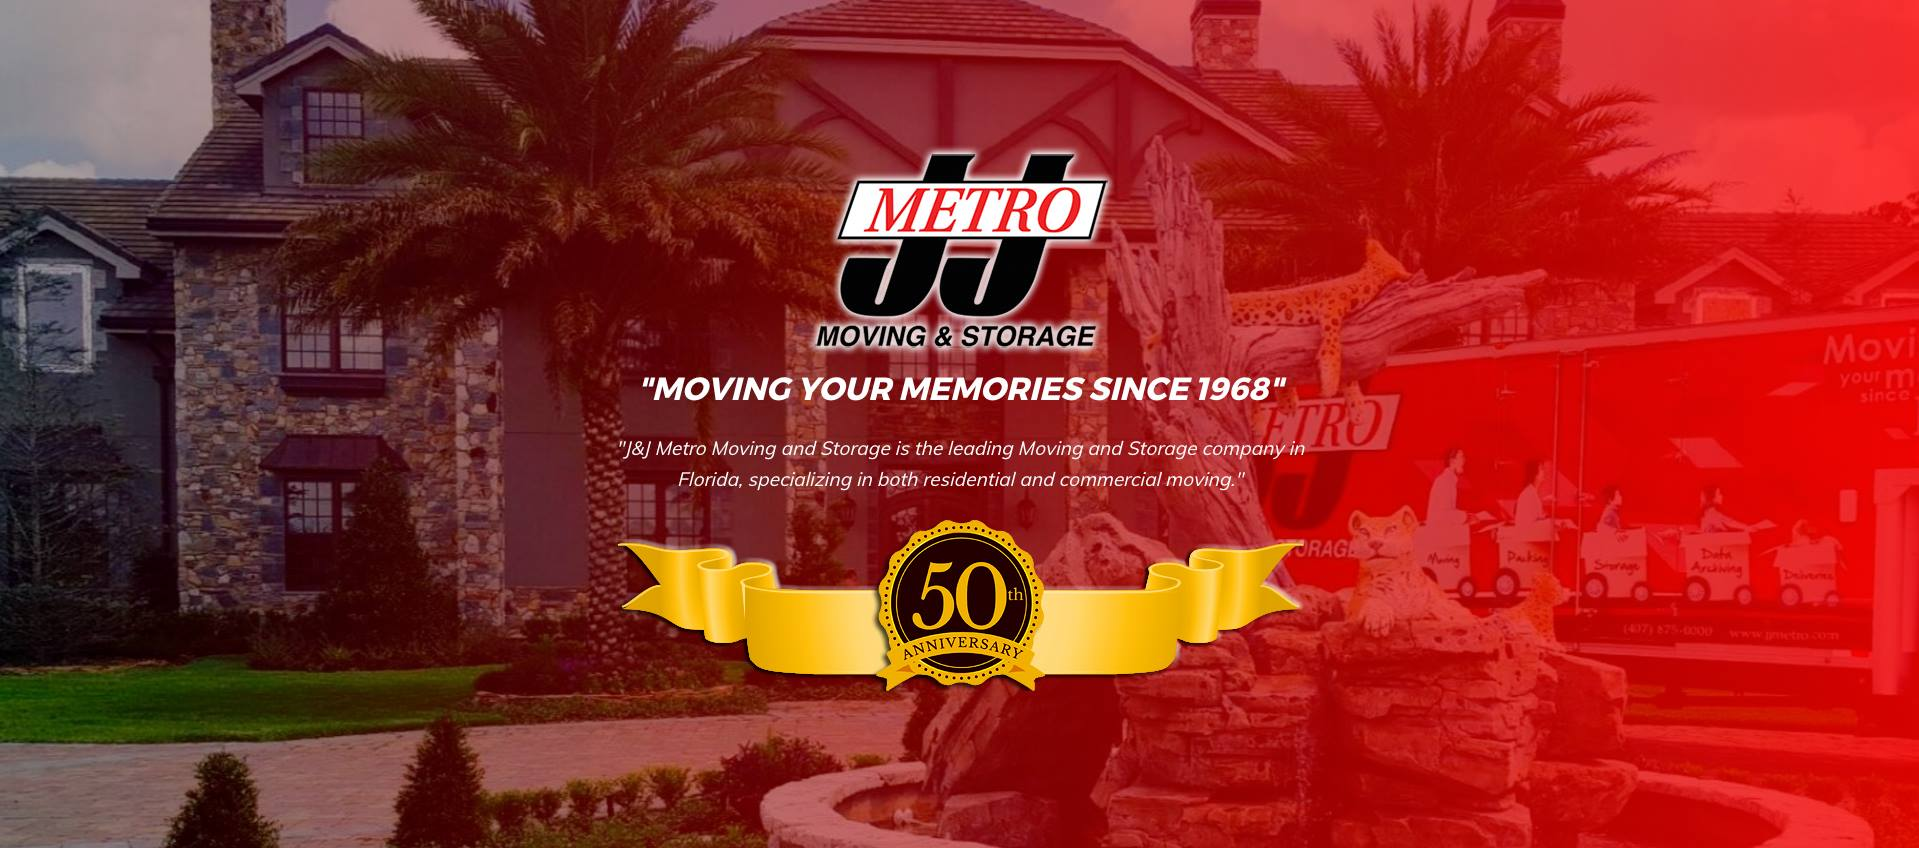 J&J Metro Moving and Storage reviews | Transportation Services at 1101 West Kennedy Boulevard - Orlando FL